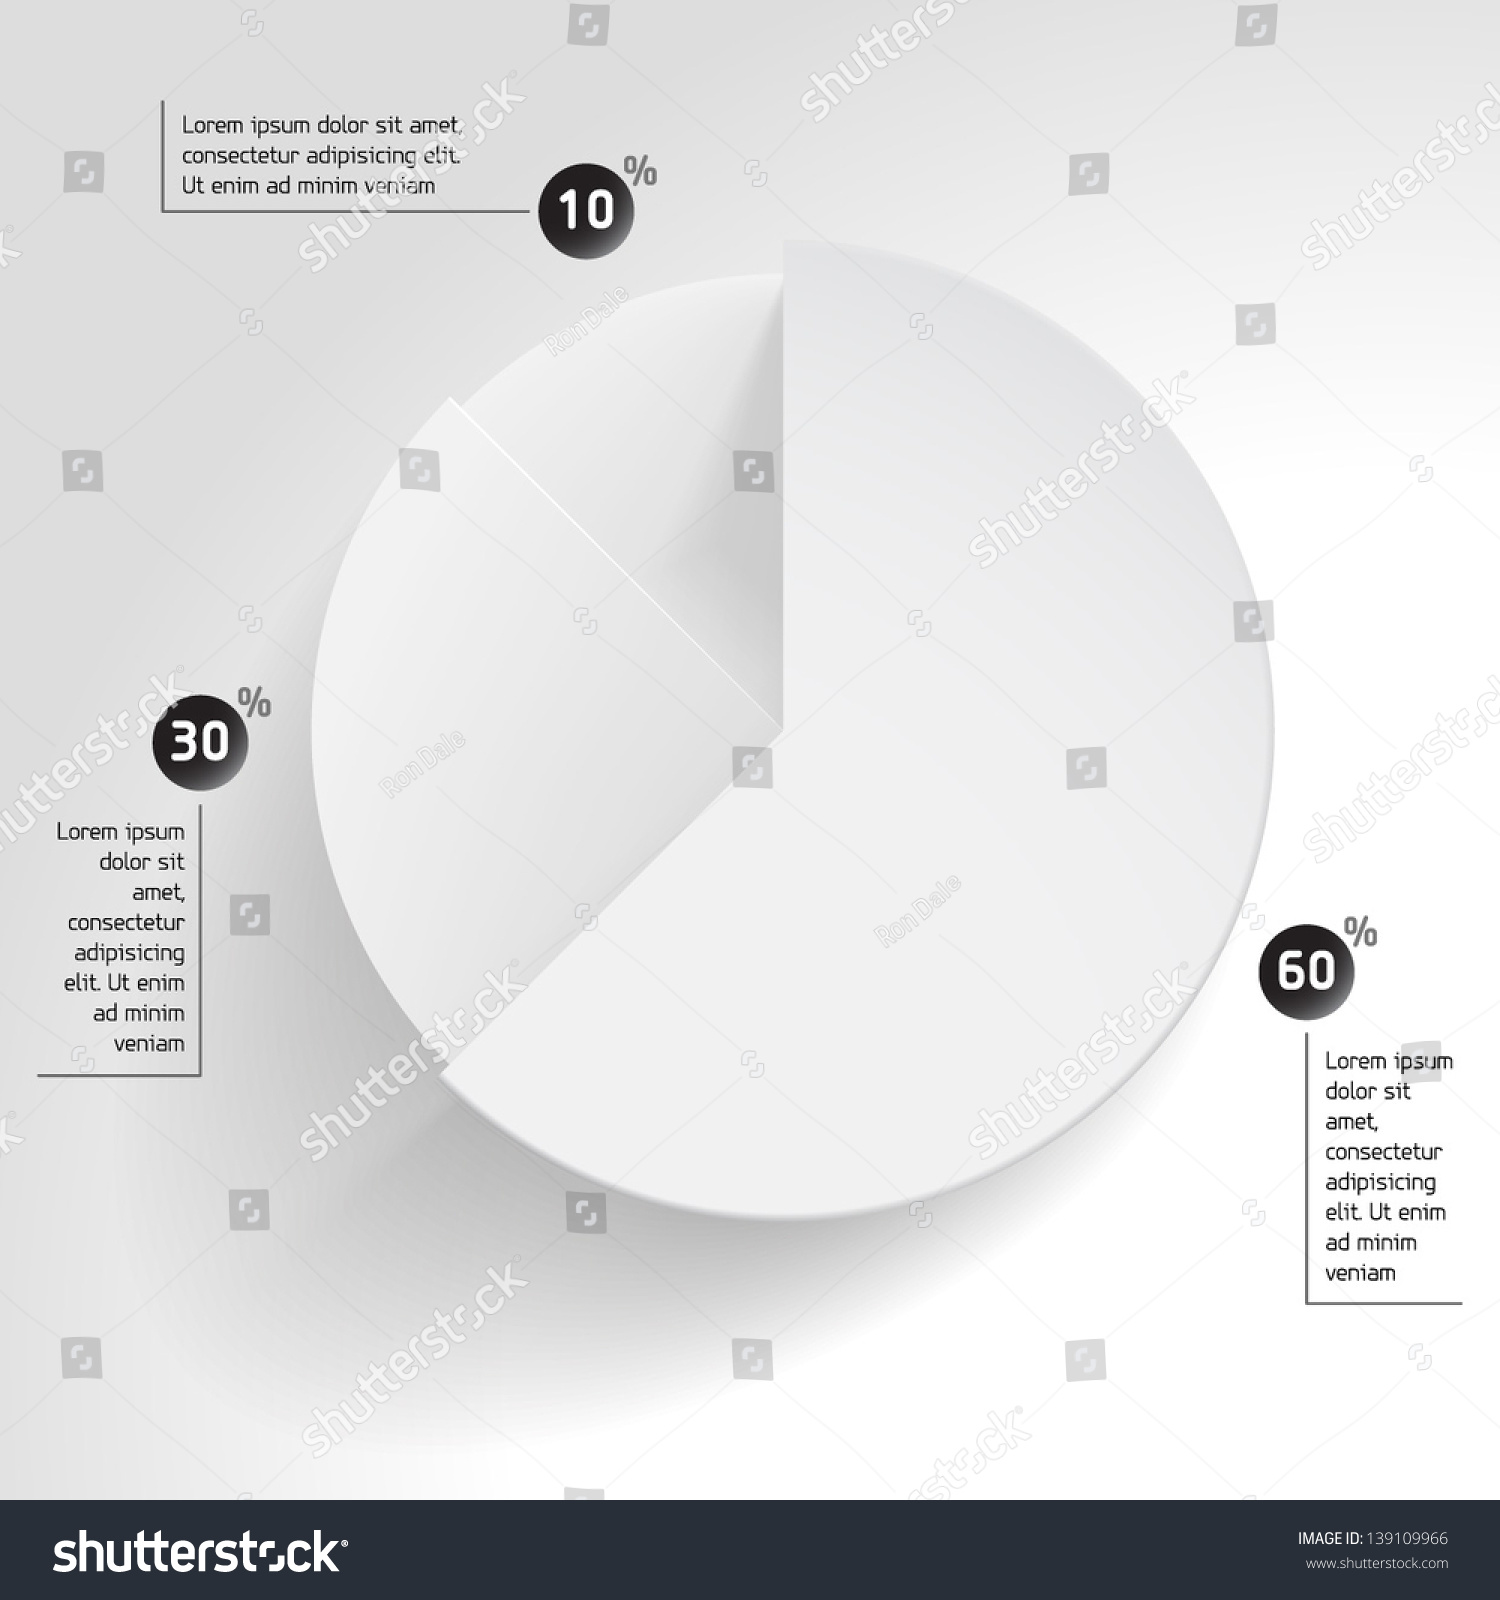 3 d business pie chart wheel chart stock vector (royalty free